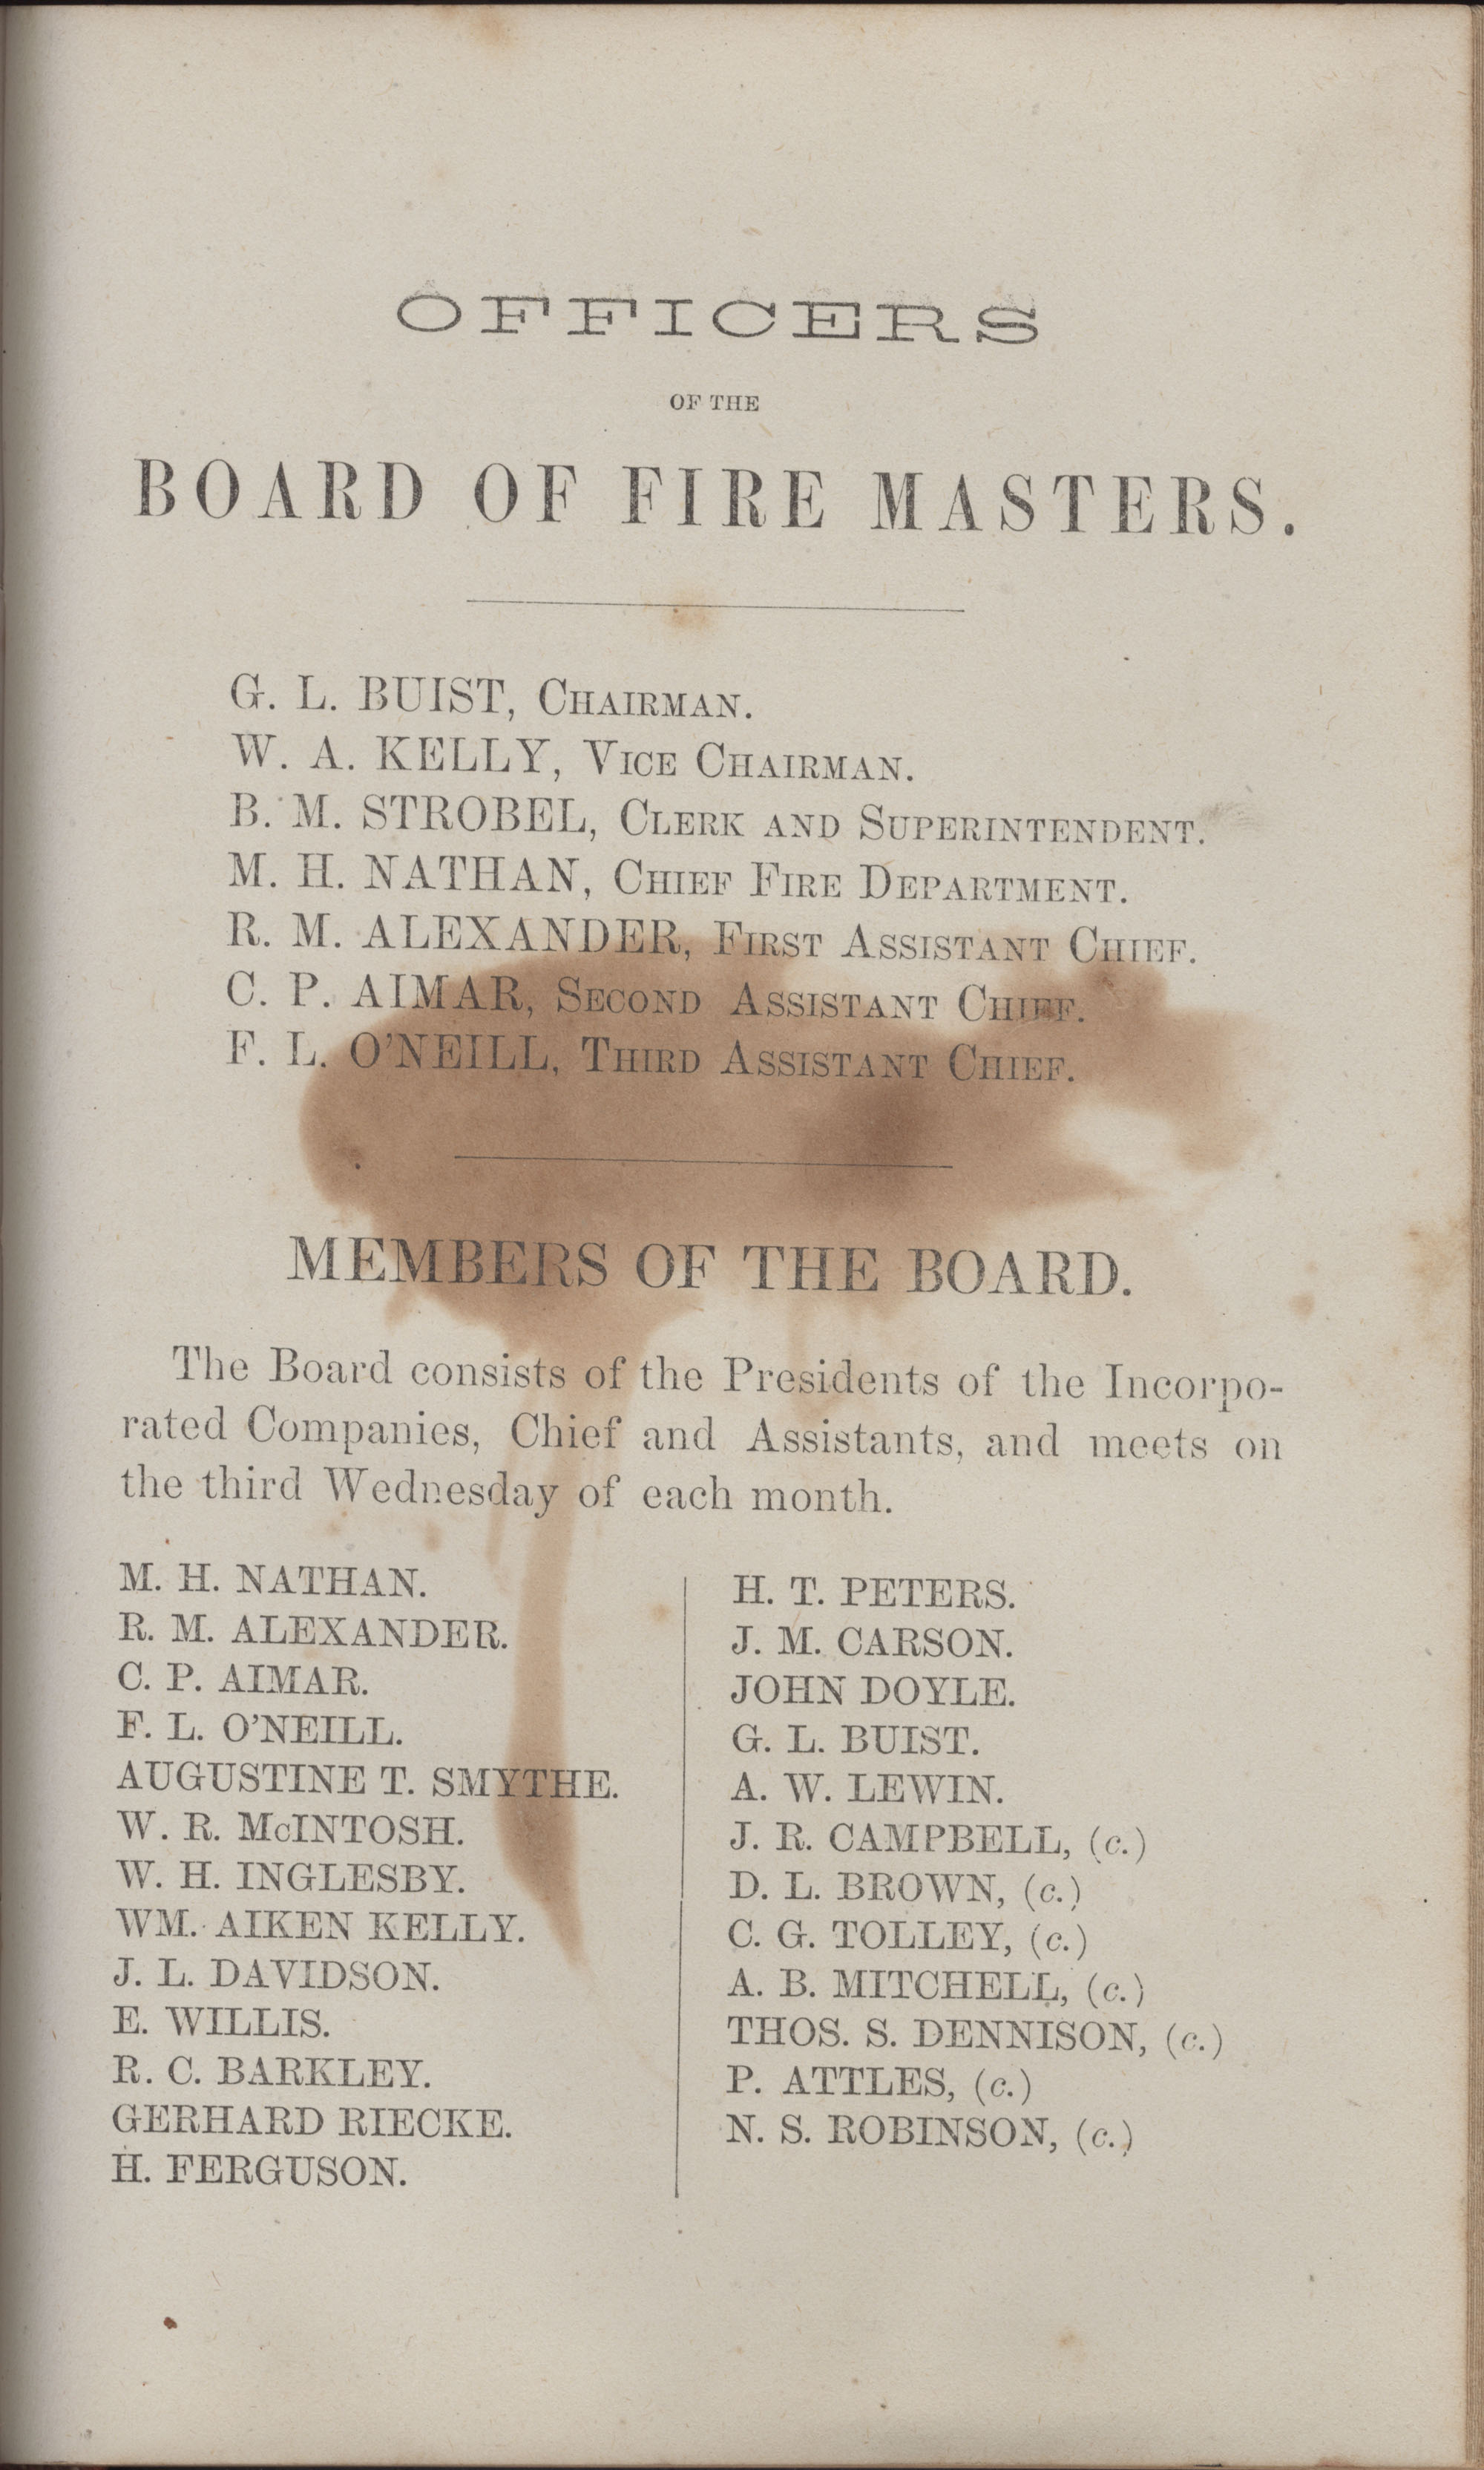 Annual Report of the Chief of the Fire Department of the City of Charleston, page 399